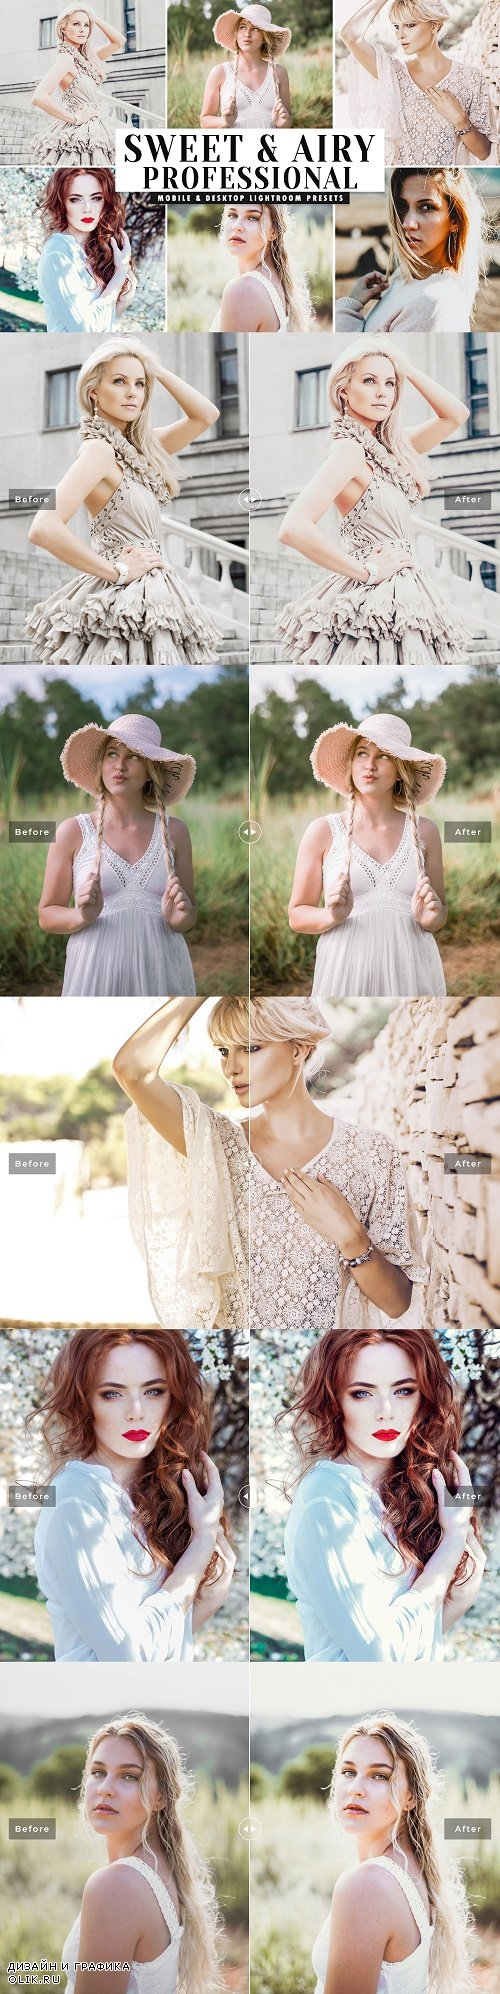 Sweet & Airy Pro Lightroom Presets 4066575